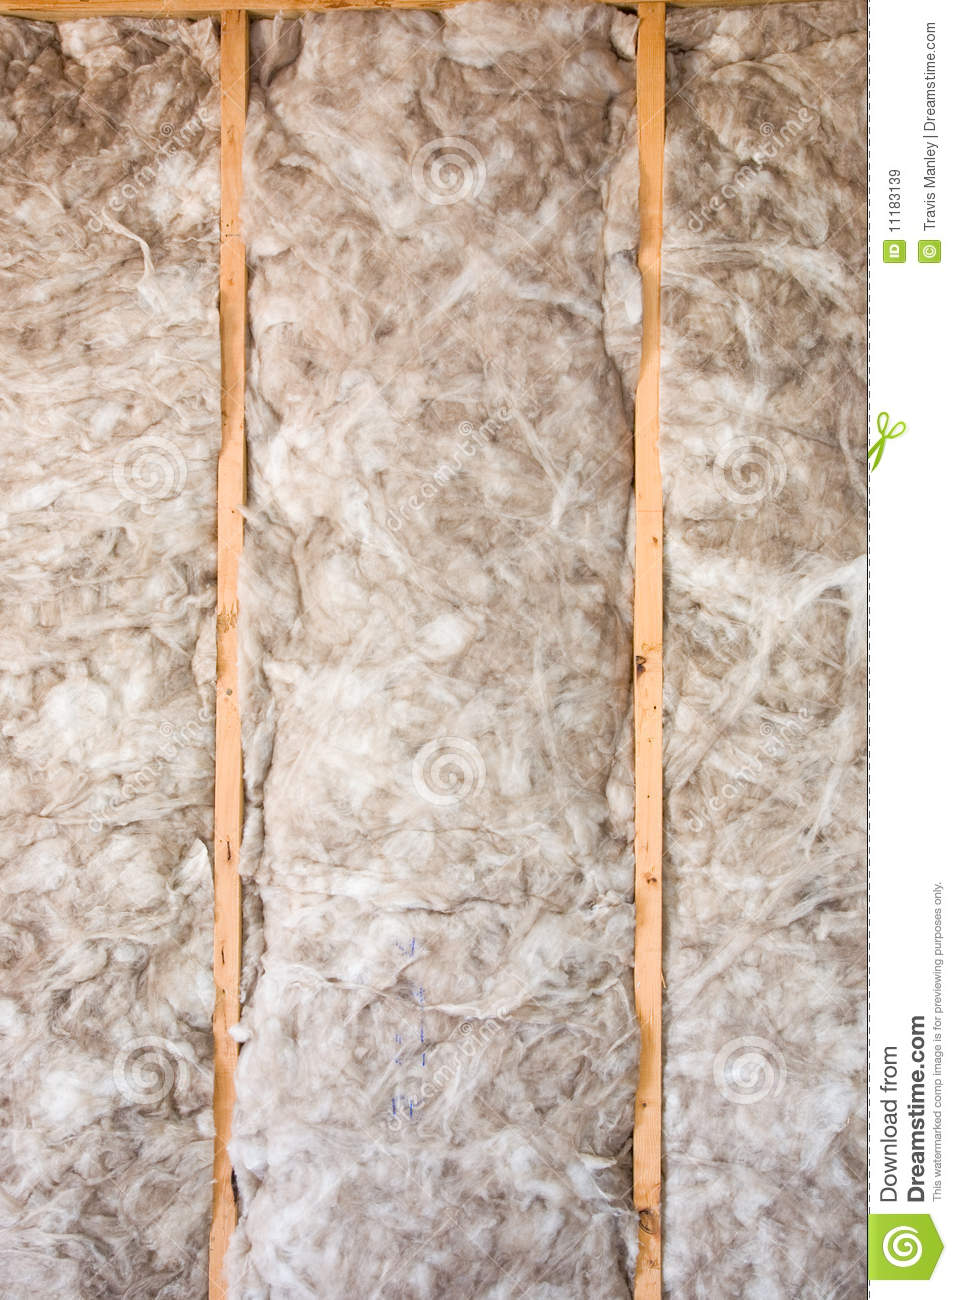 Insulation royalty free stock images image 11183139 for Eco friendly house insulation